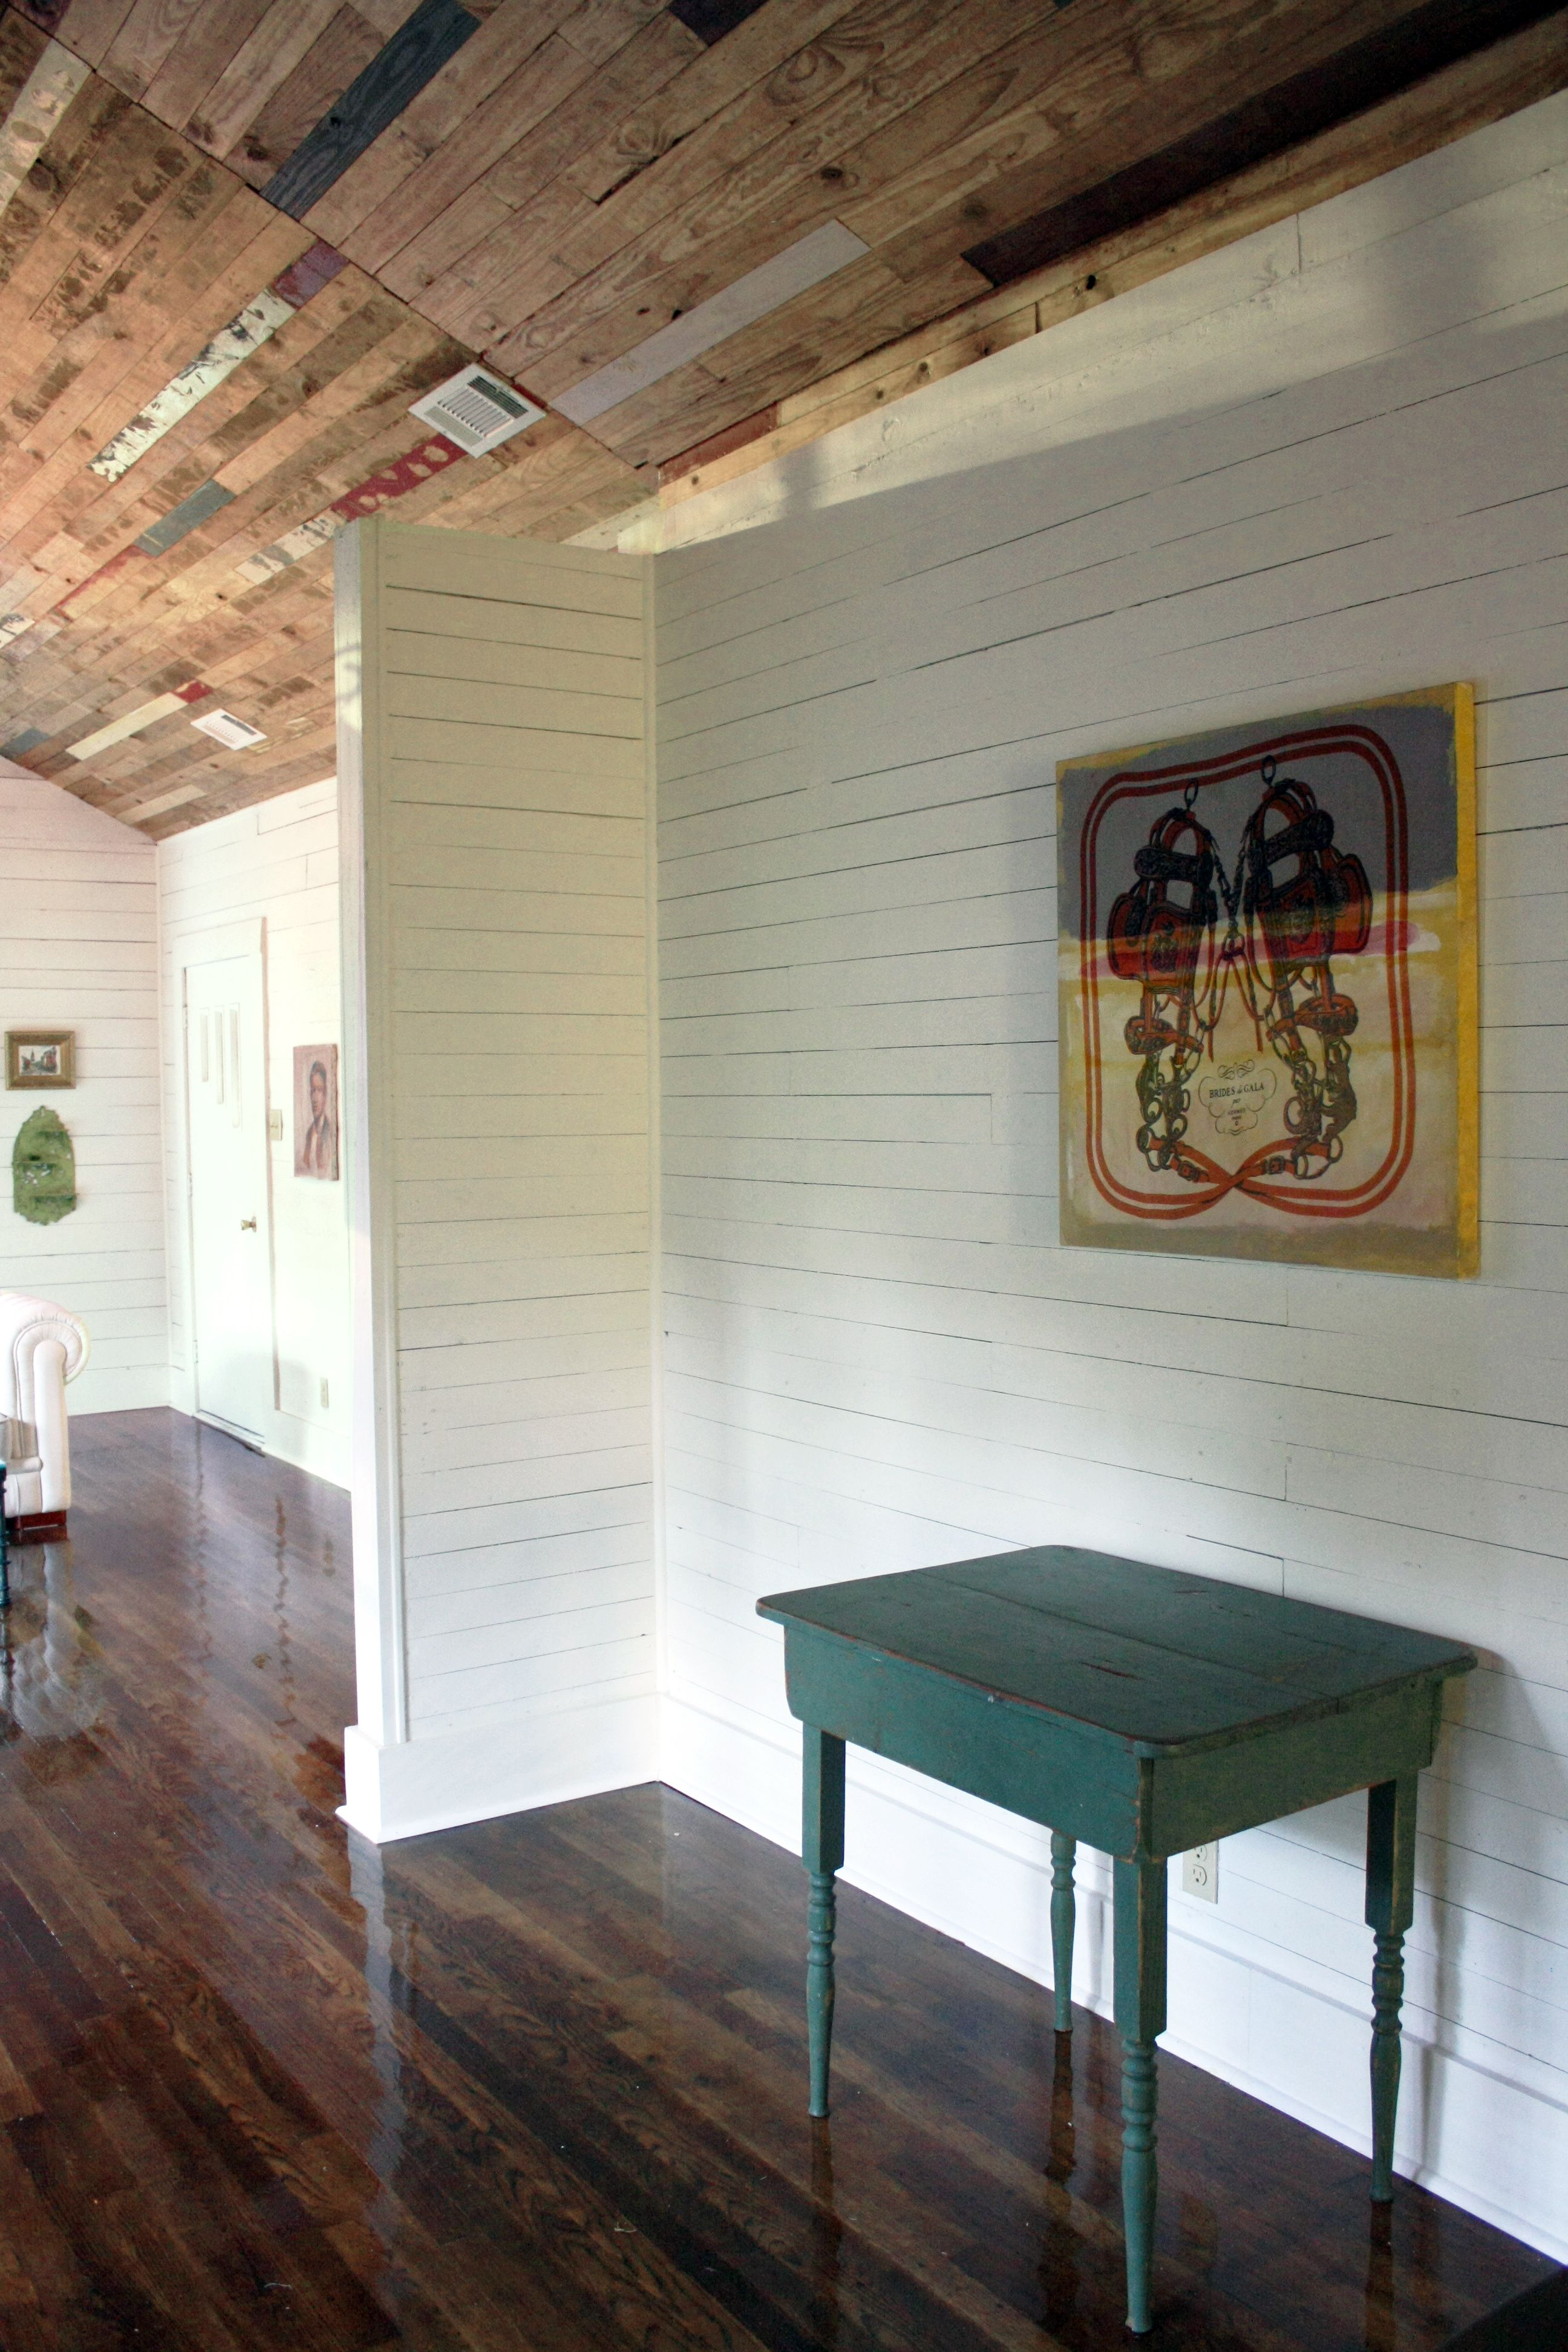 Reclaimed wood ceiling above white ship walls which feature an